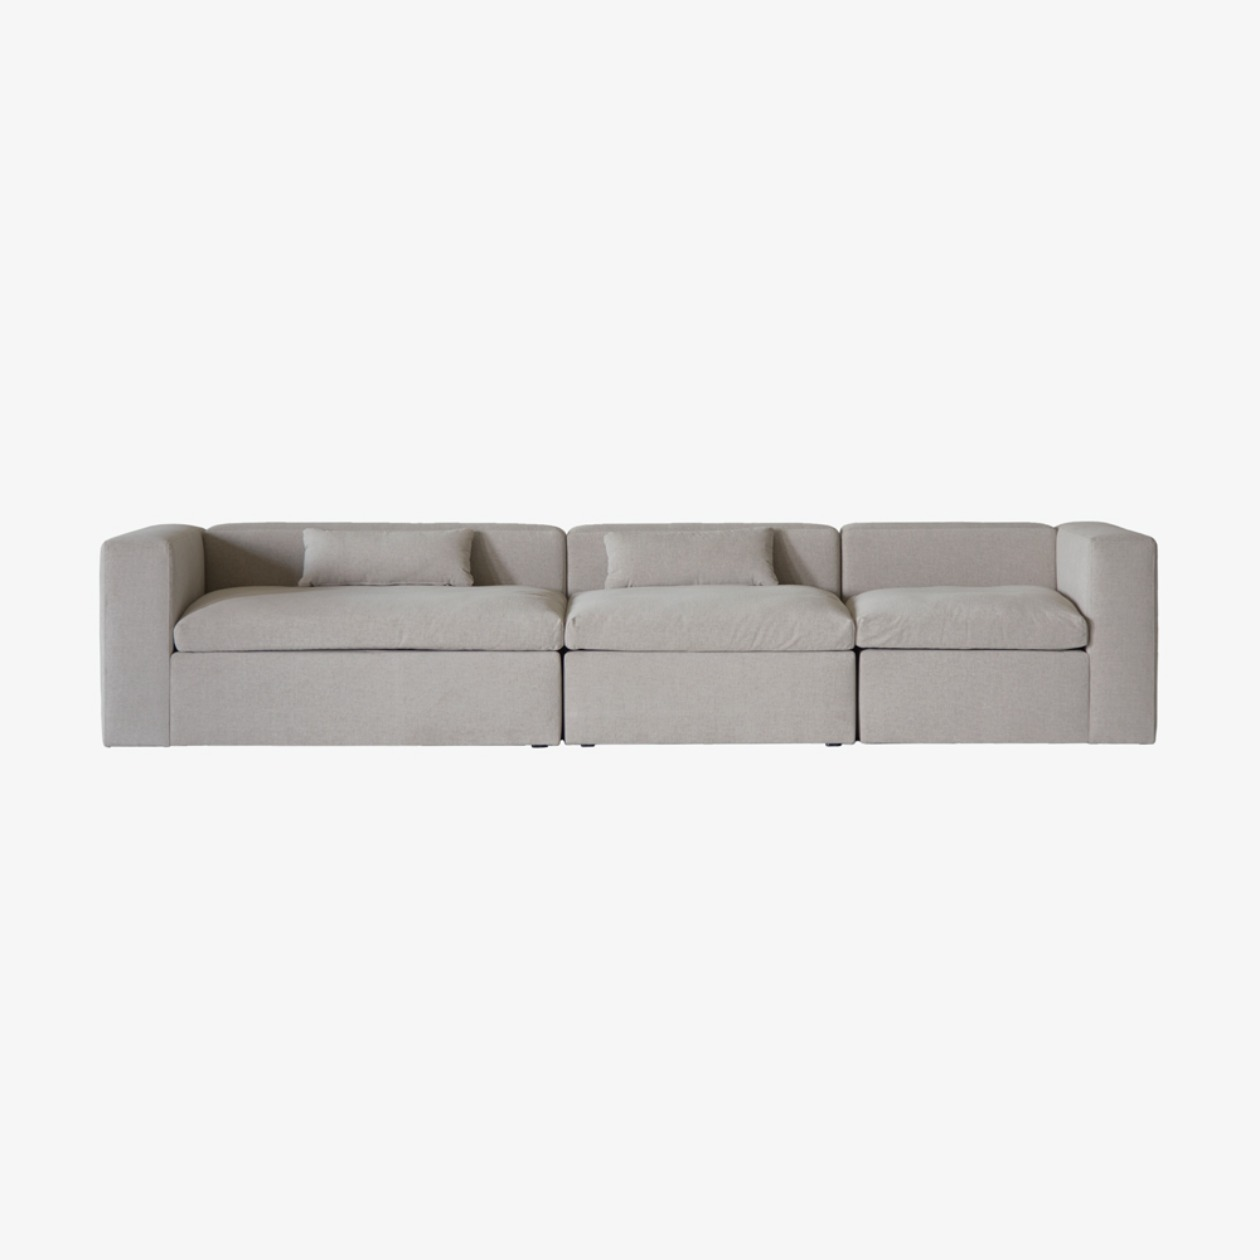 TIMELESS SOFT SOFA A+B+D